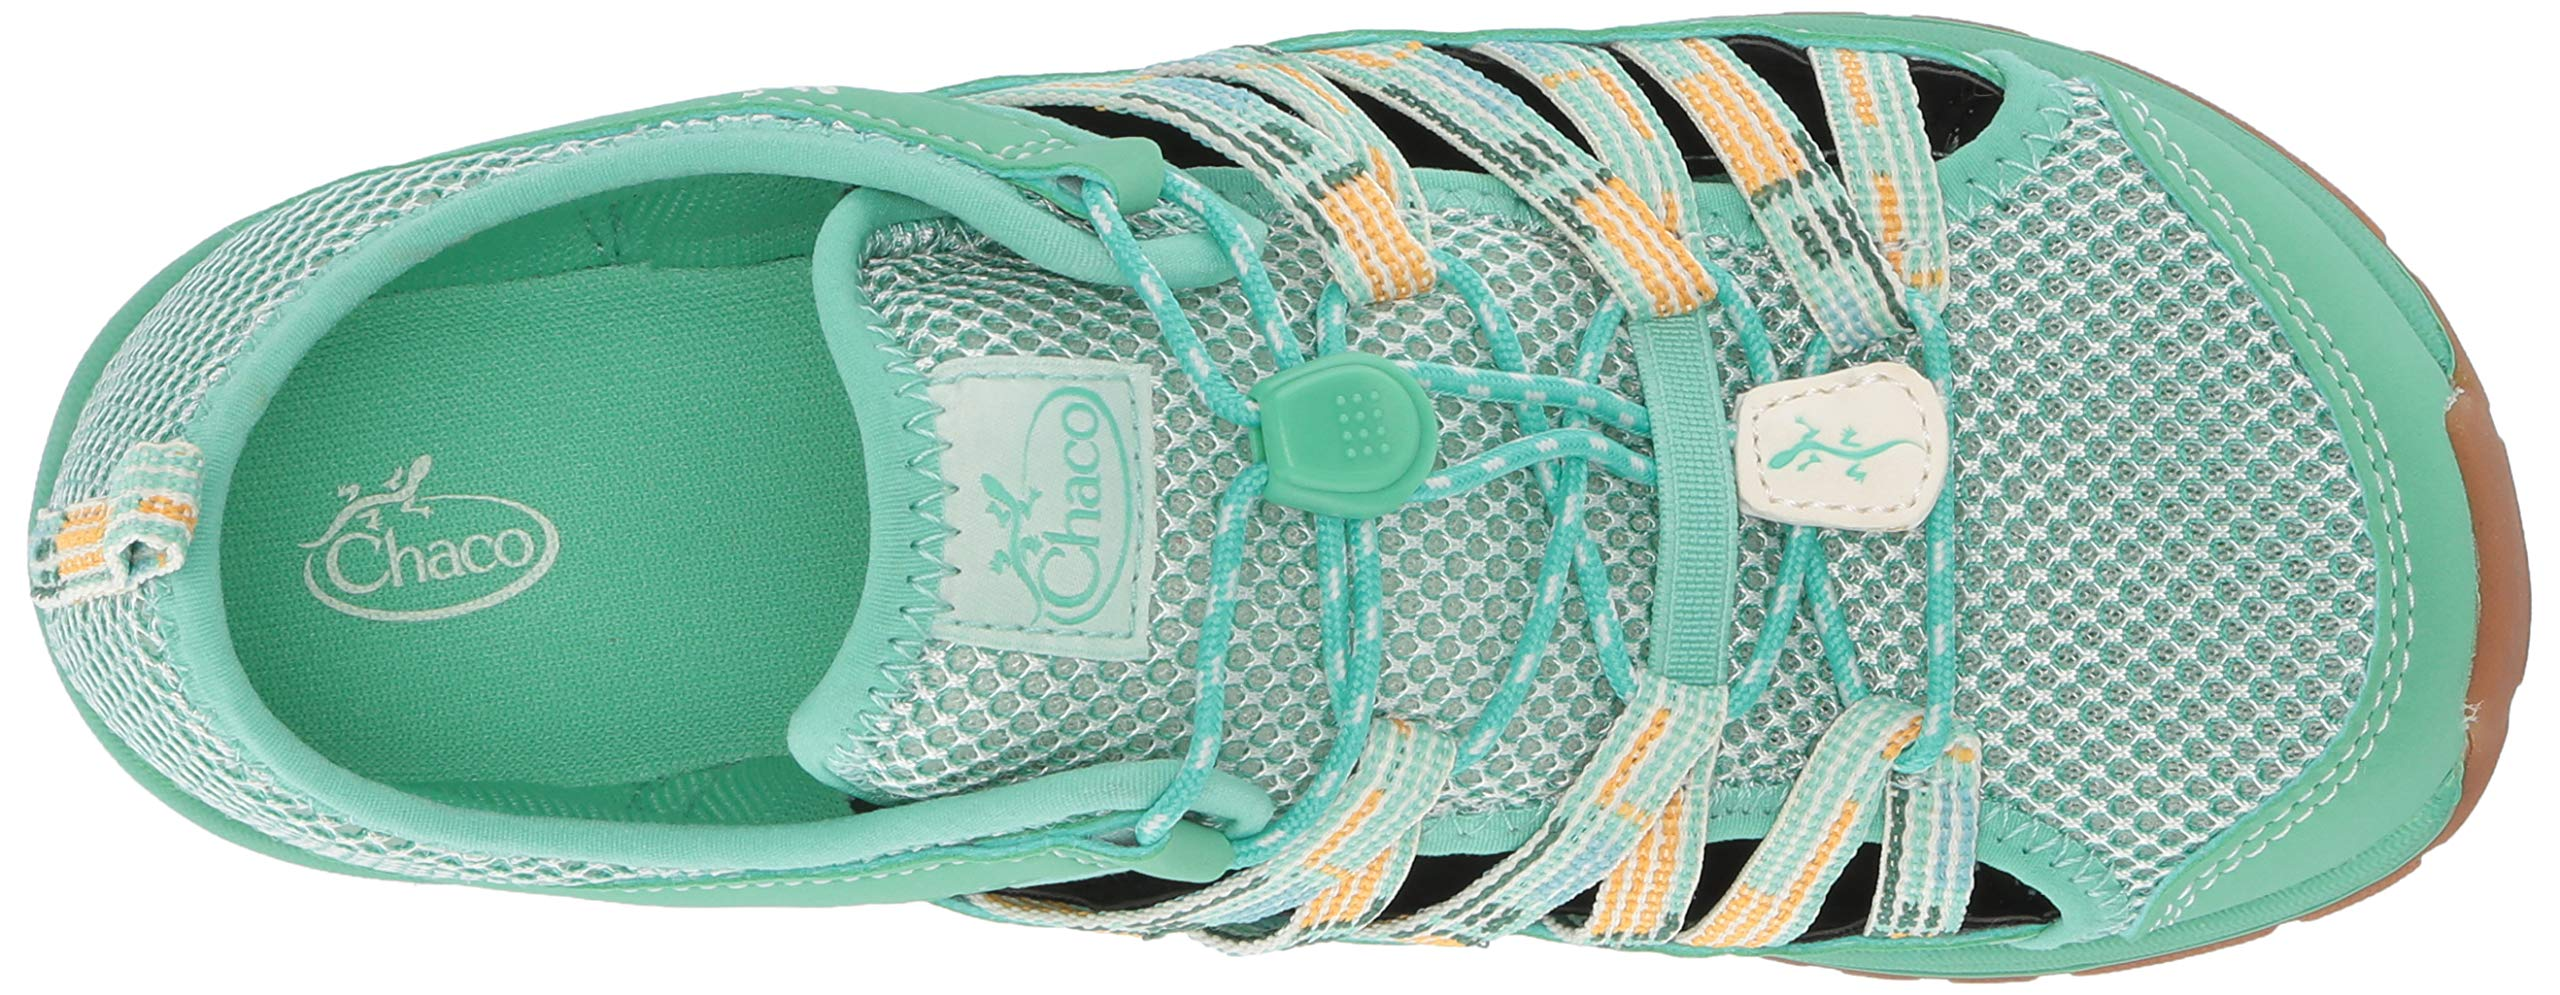 Chaco Unisex Outcross 2 Hiking Shoe teal 04.0 M US Big Kid by Chaco (Image #8)